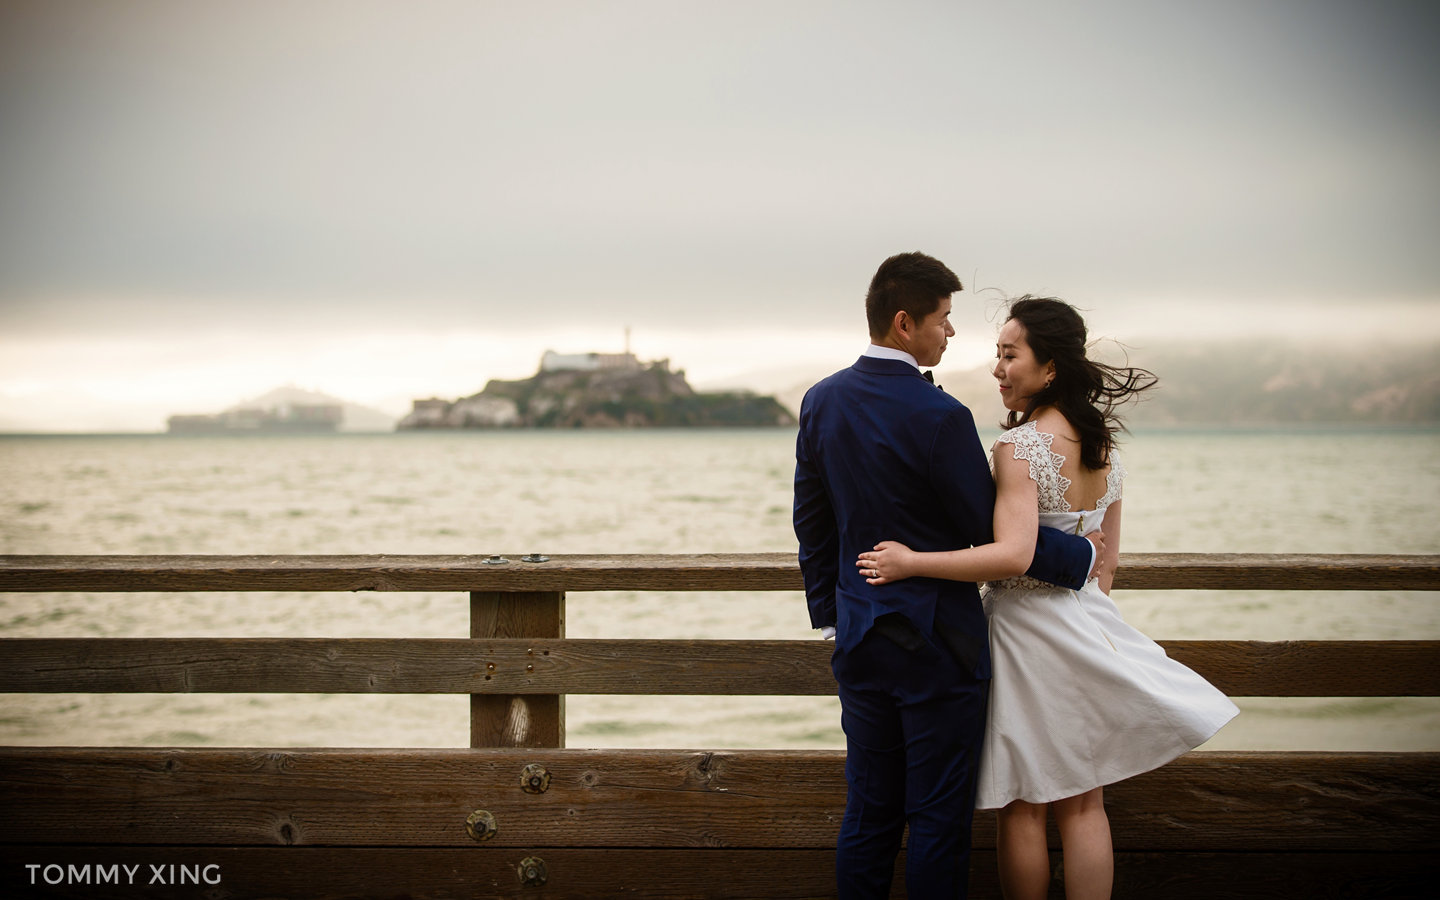 San Francisco Pre Wedding 美国旧金山湾区婚纱照 摄影师Tommy Xing Photography 23.jpg